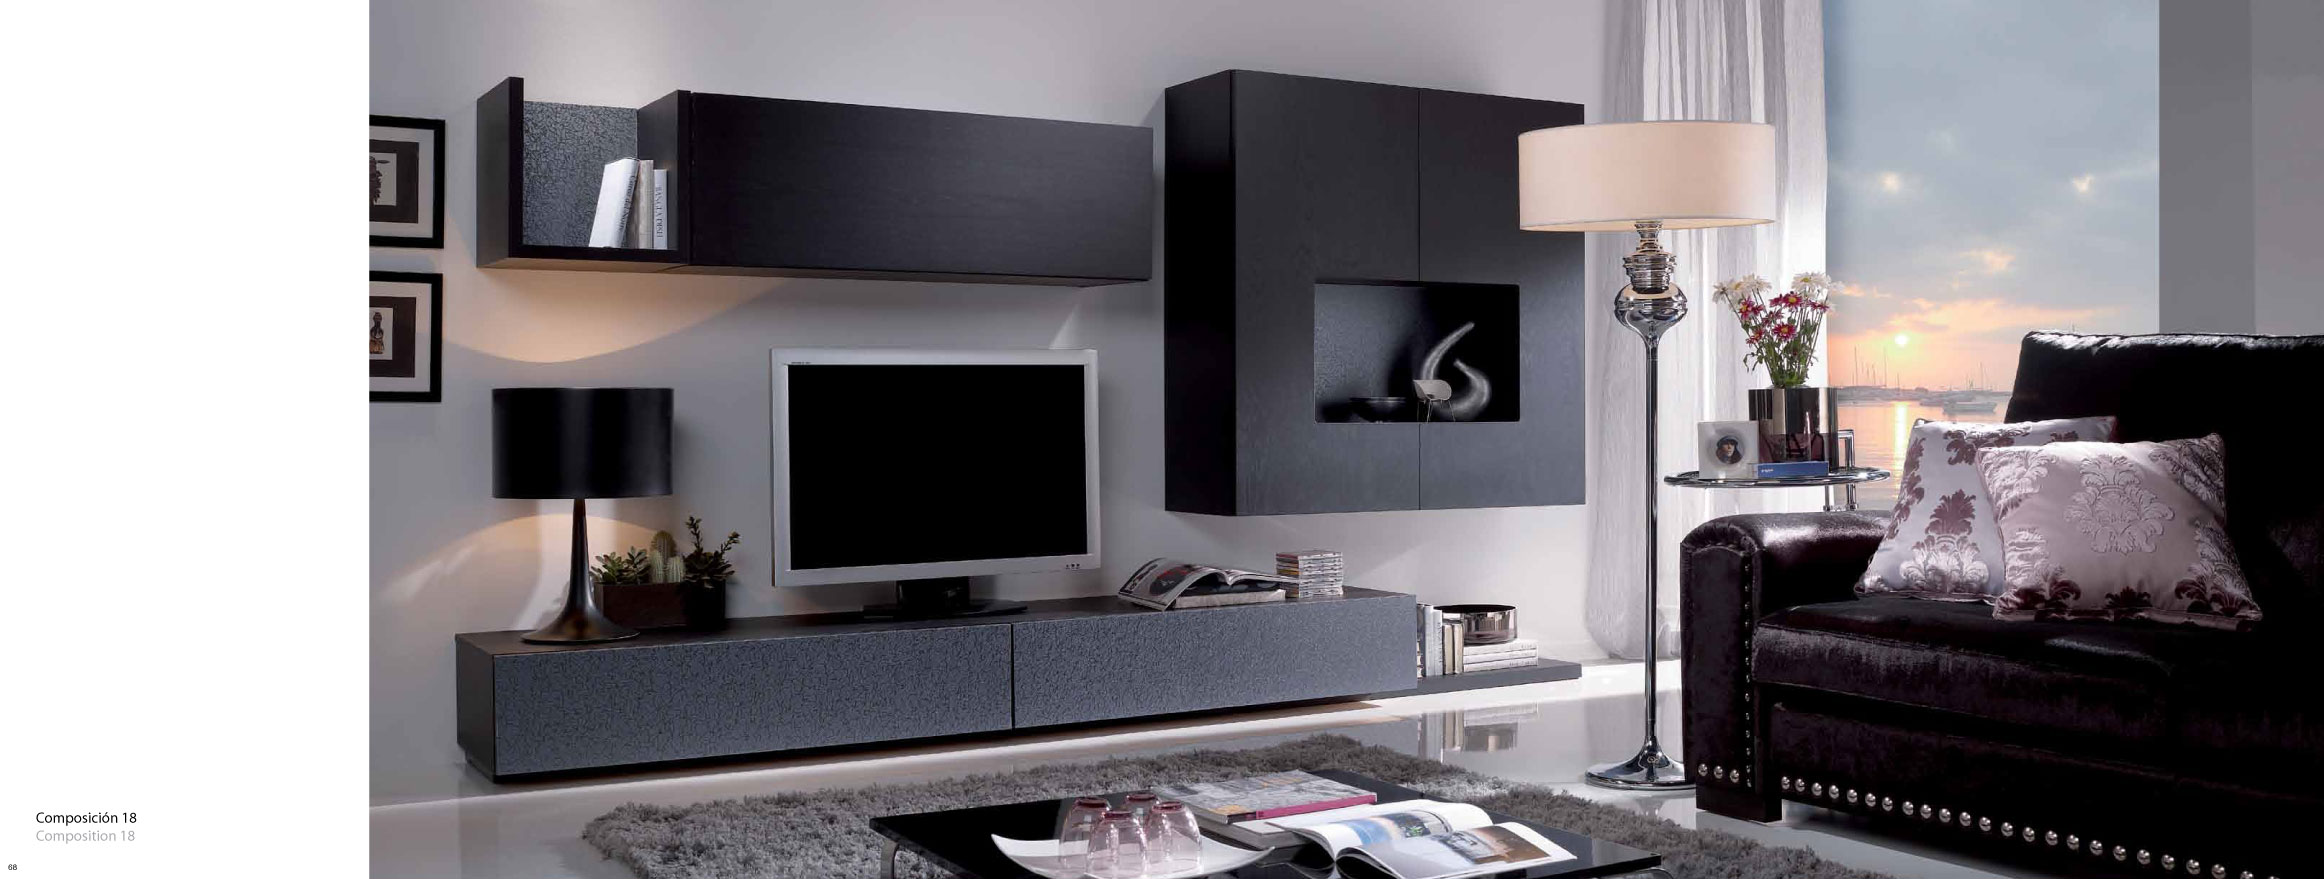 Index of images product fullsize 4 0 - Modern wall units ...